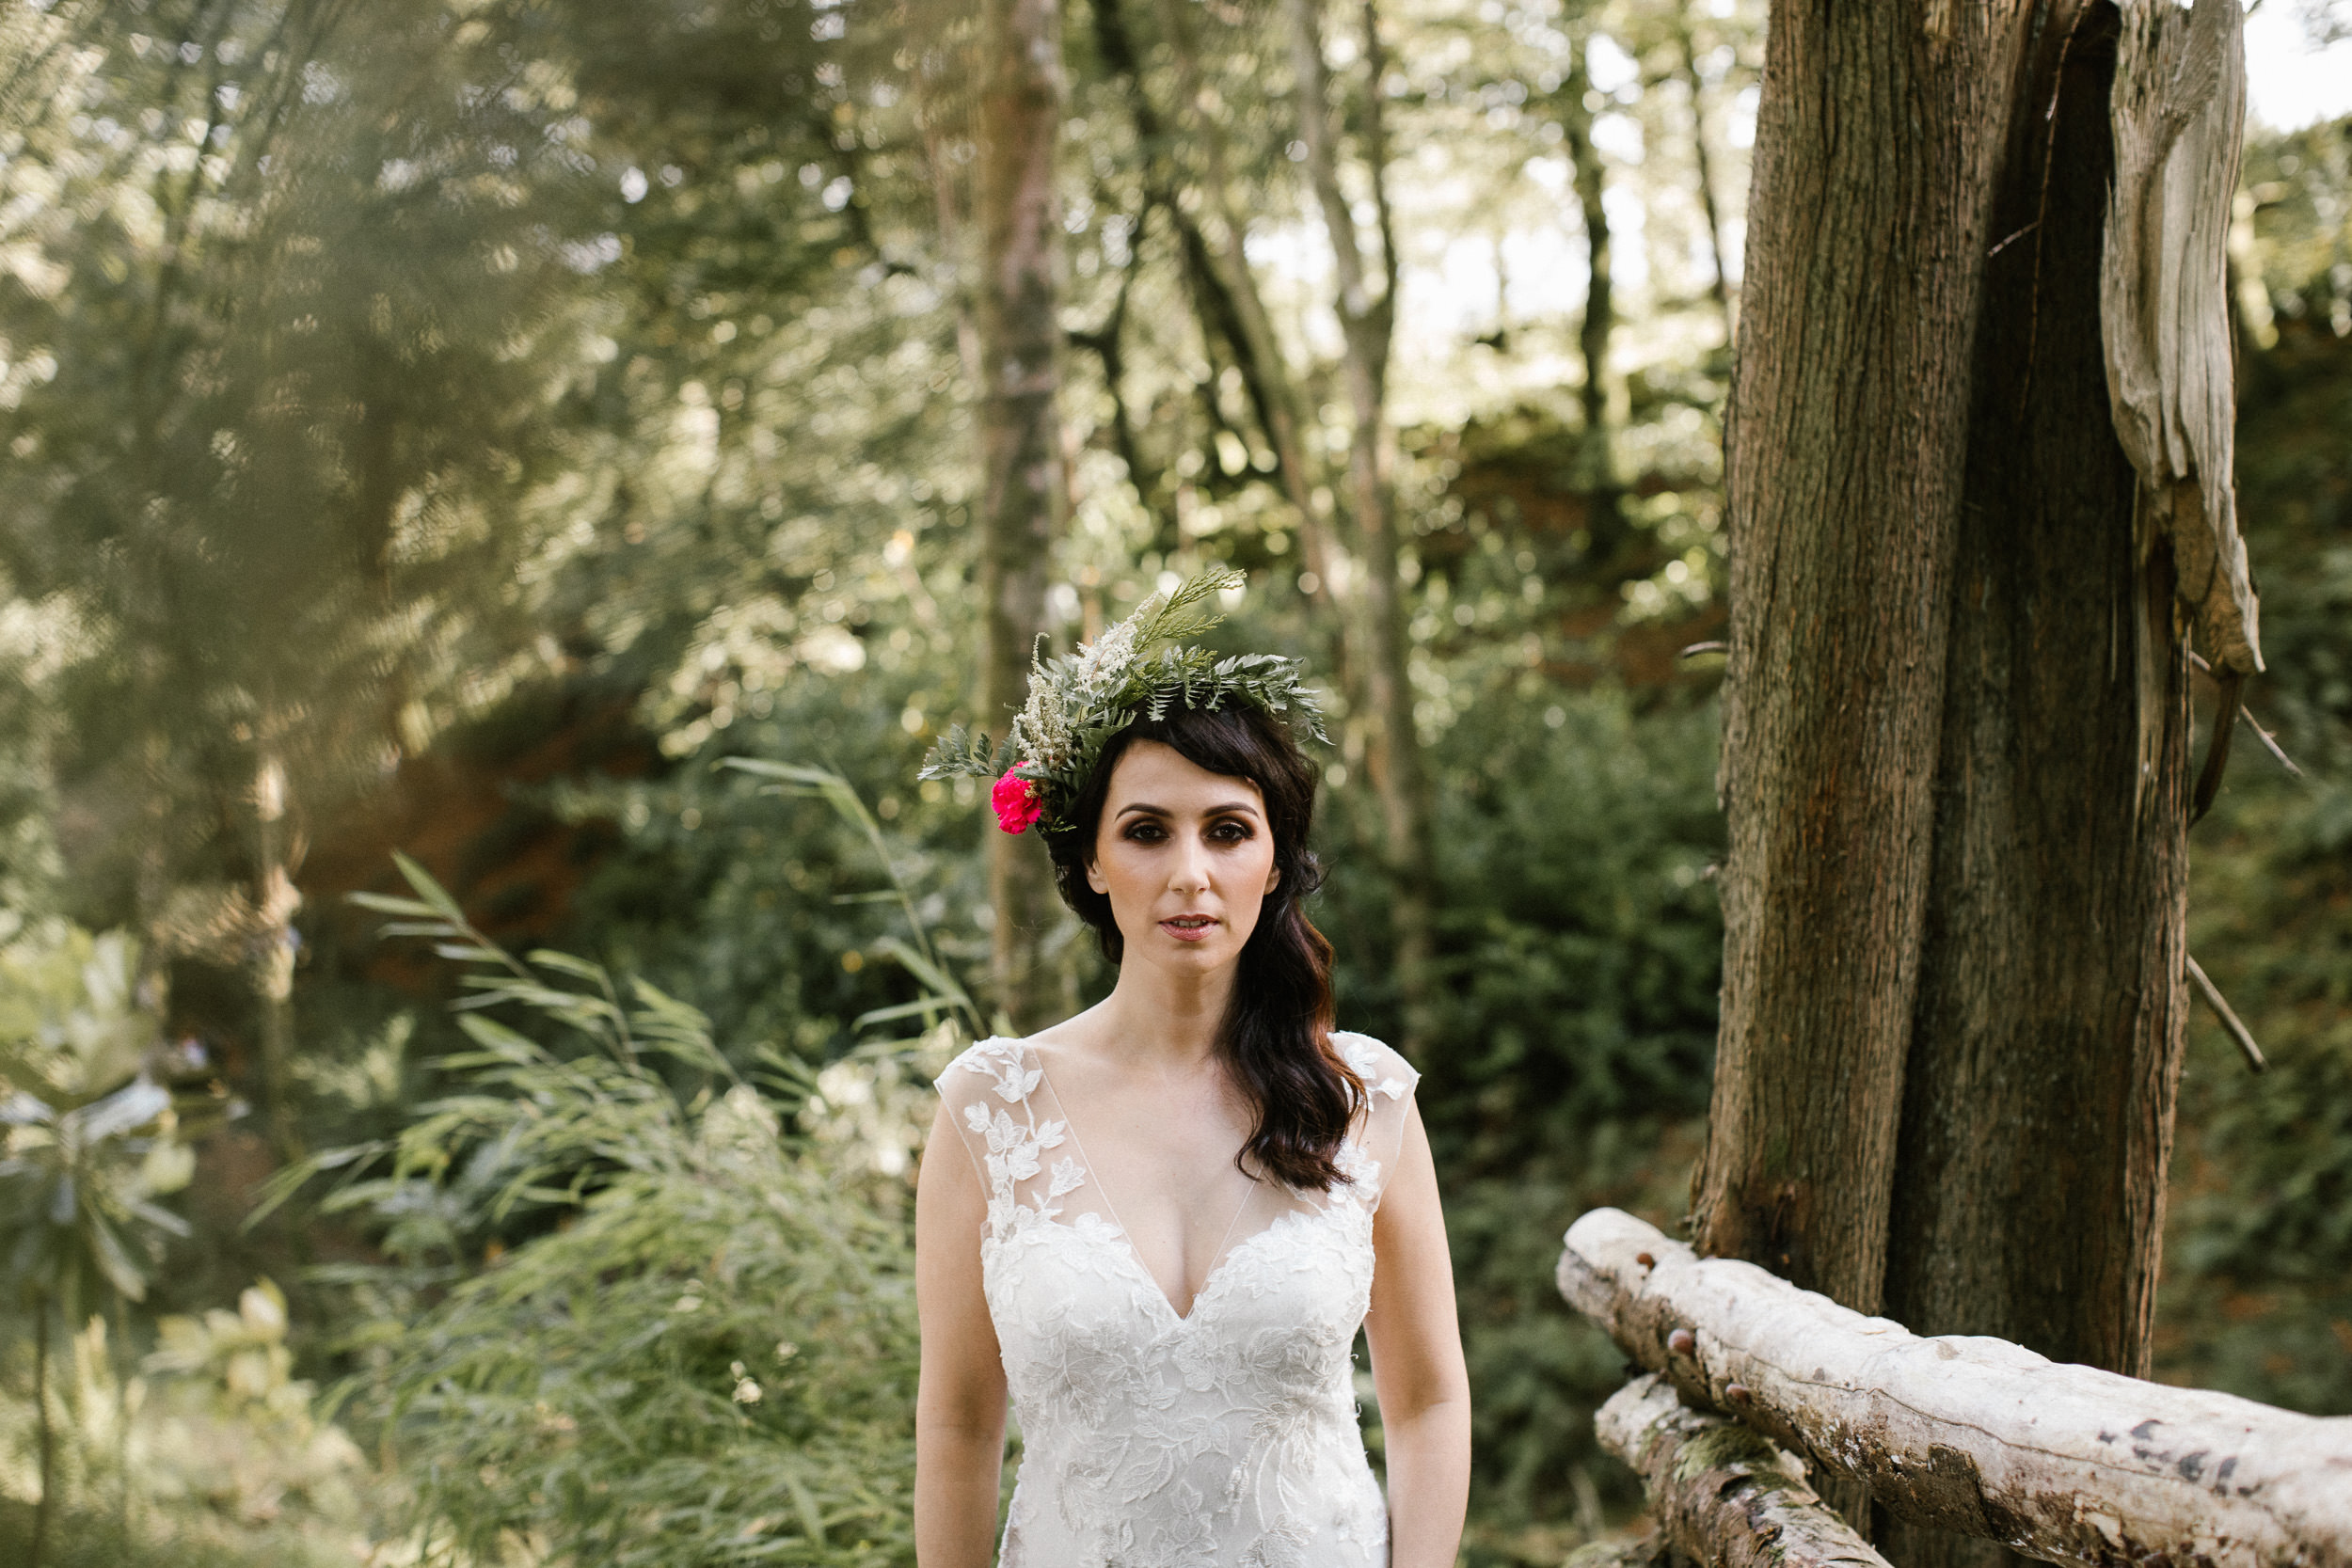 clairebyrnephotography-styled-shoot-huntingbrook-gardens-inspiration-weddings-woods-forest-81.jpg